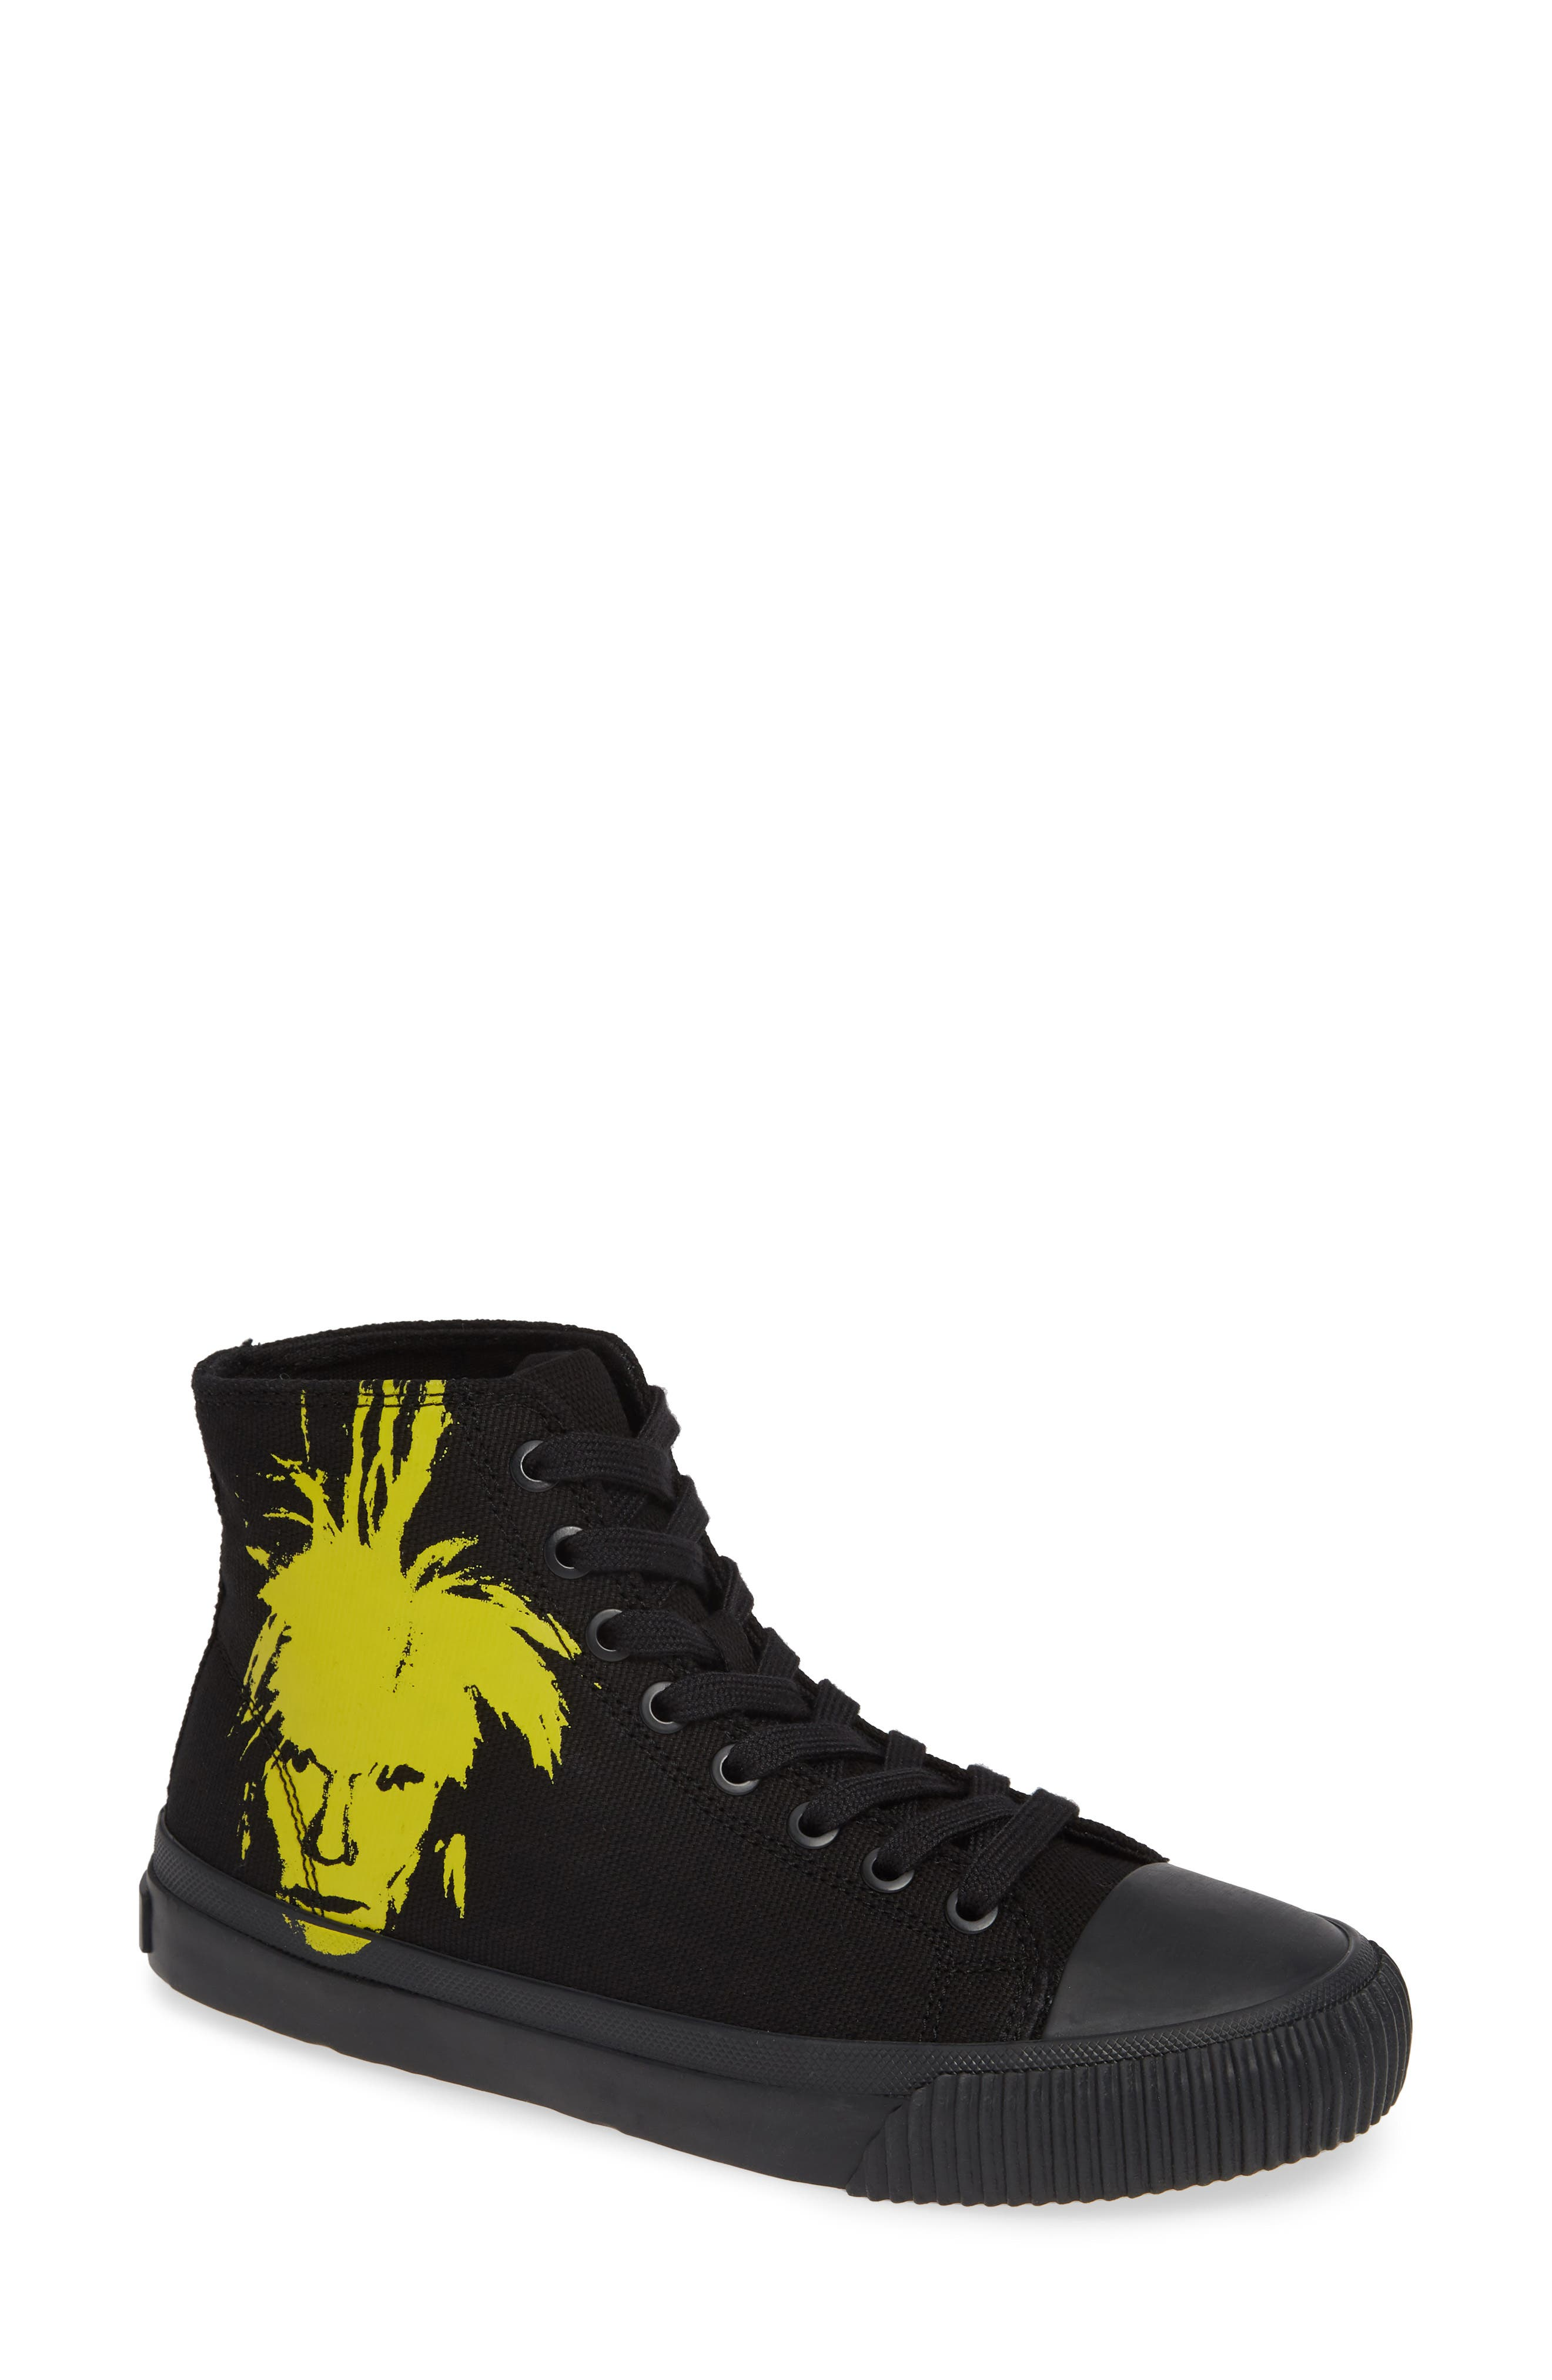 Iconica High Top Sneaker,                         Main,                         color, 001